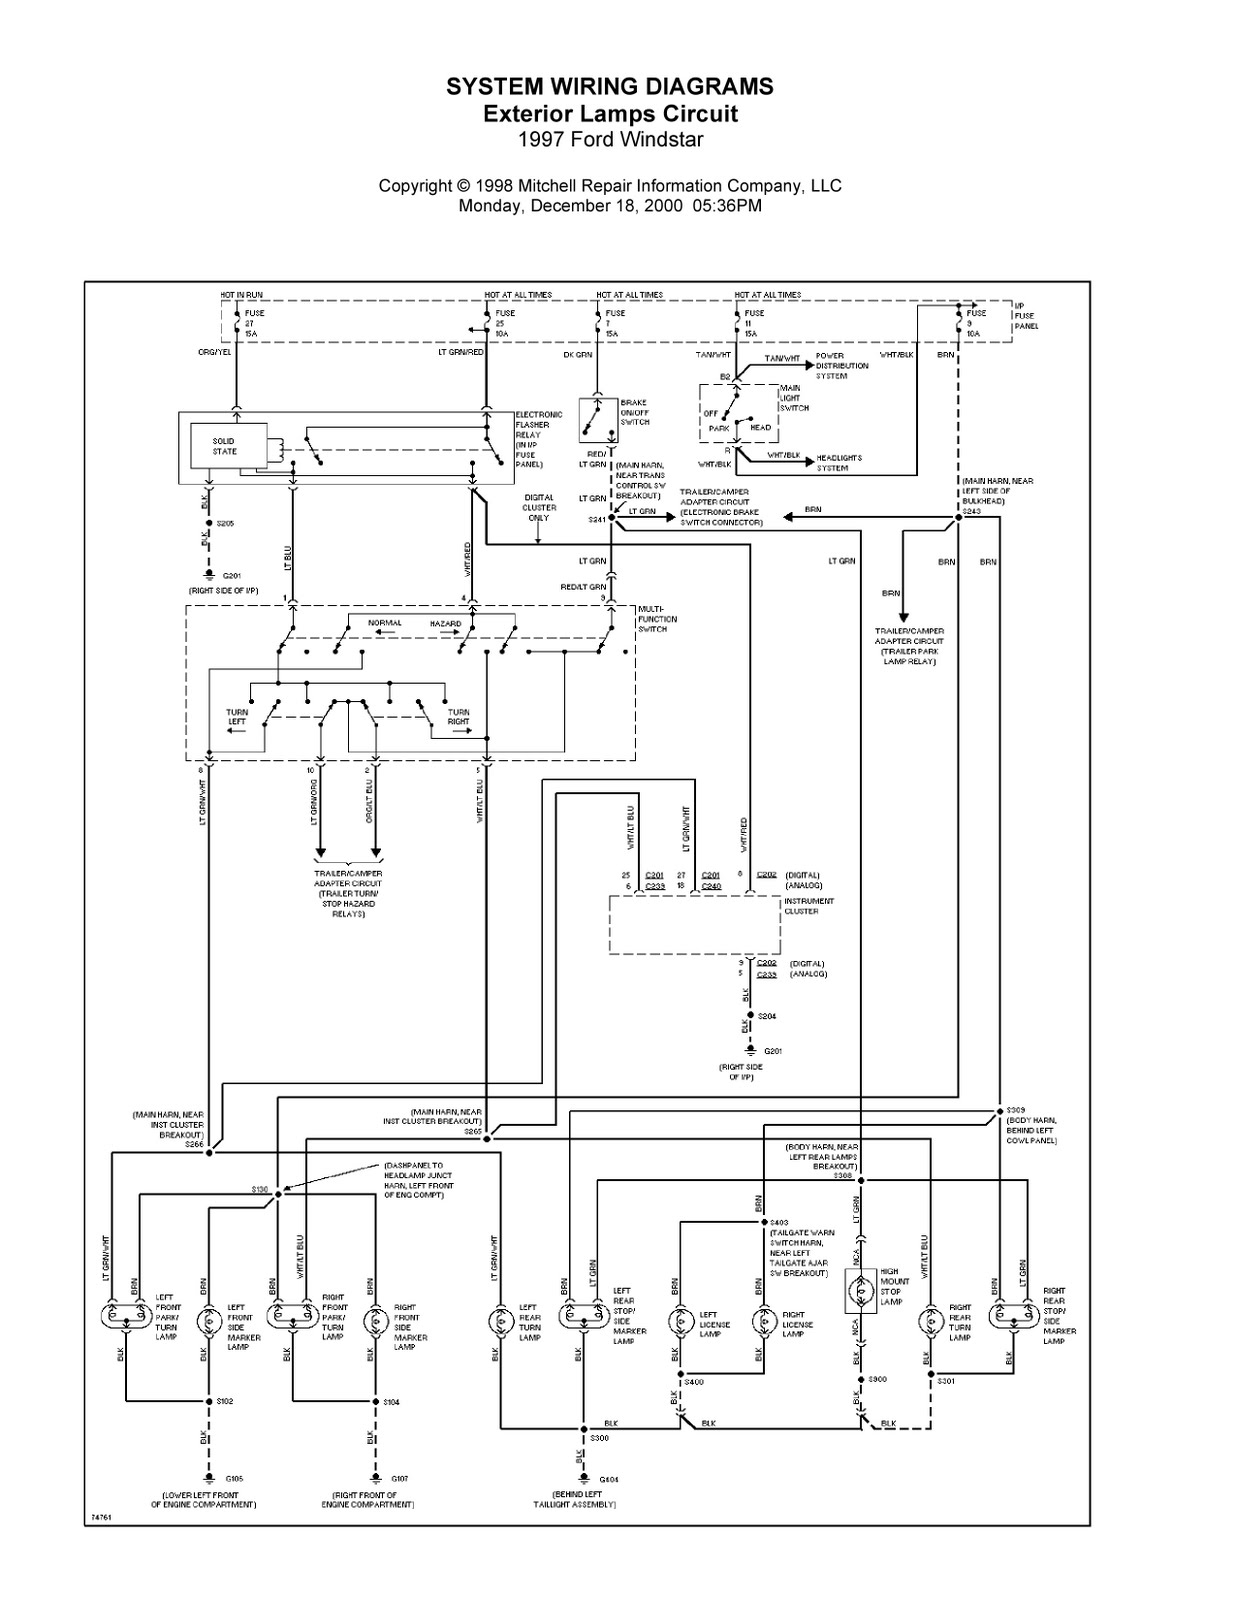 1997 Windstar Wiring Diagram Another Blog About Ford Engine Complete System Diagrams